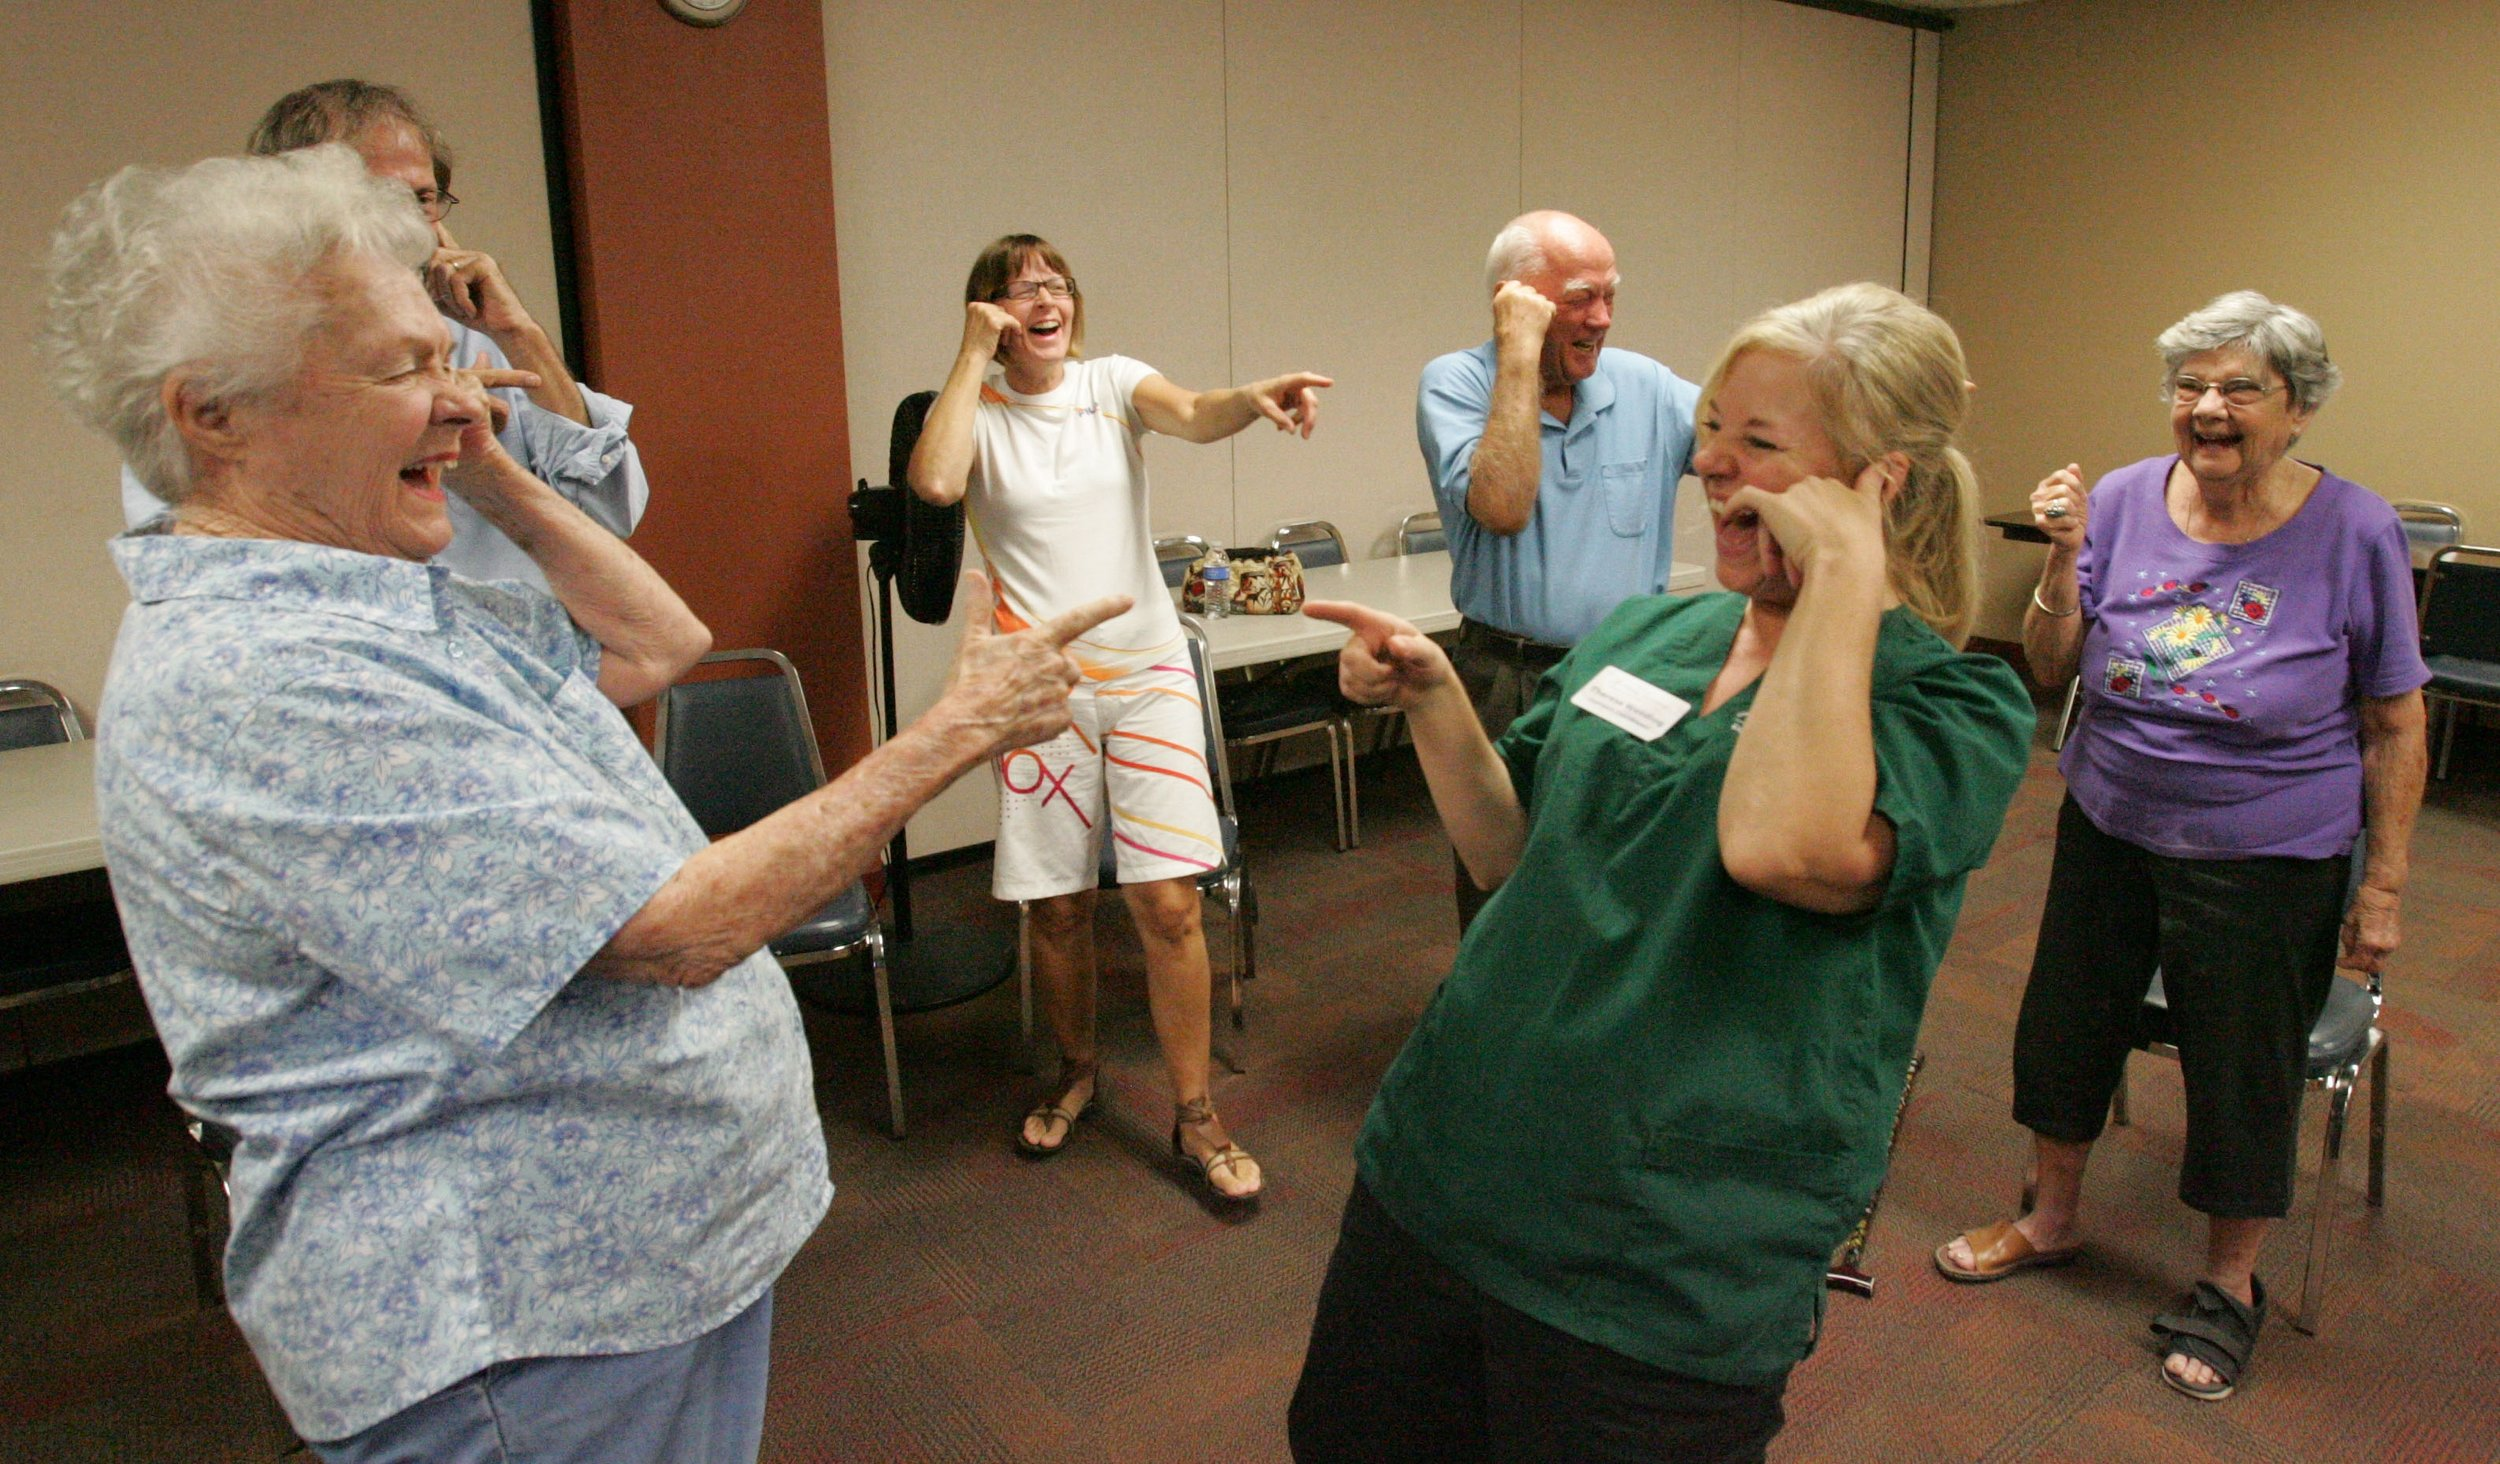 http://athomesol.com/2012/11/08/laughter-is-good-medicine-for-seniors-and-caregivers/